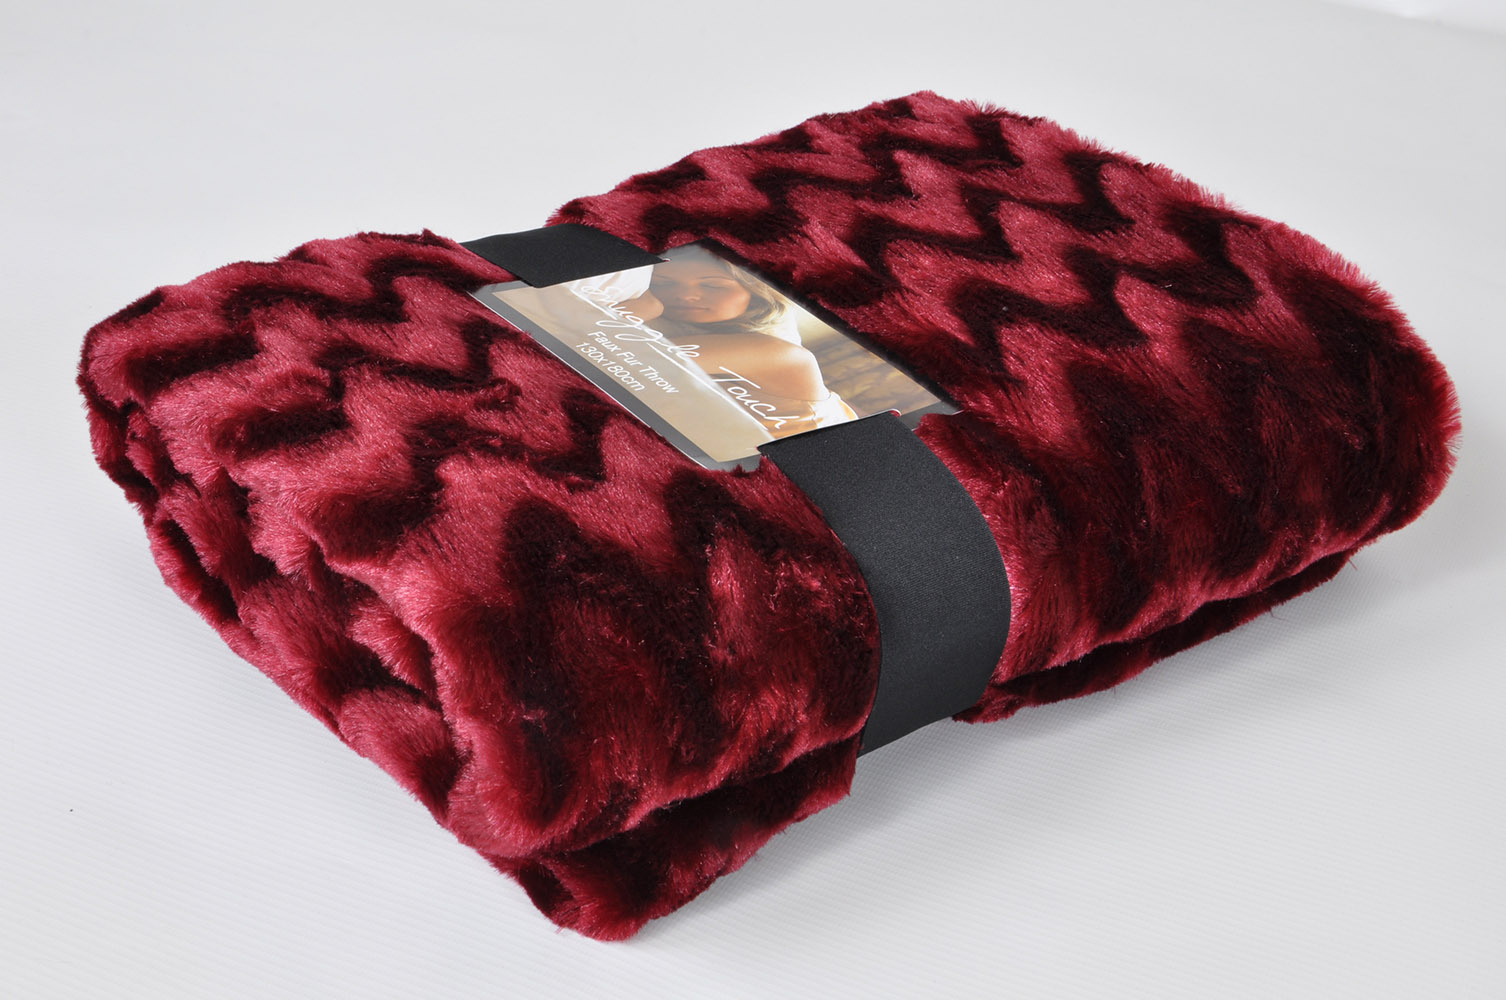 Luxury Snuggle Up Super Soft Faux Fur Throw Blanket In